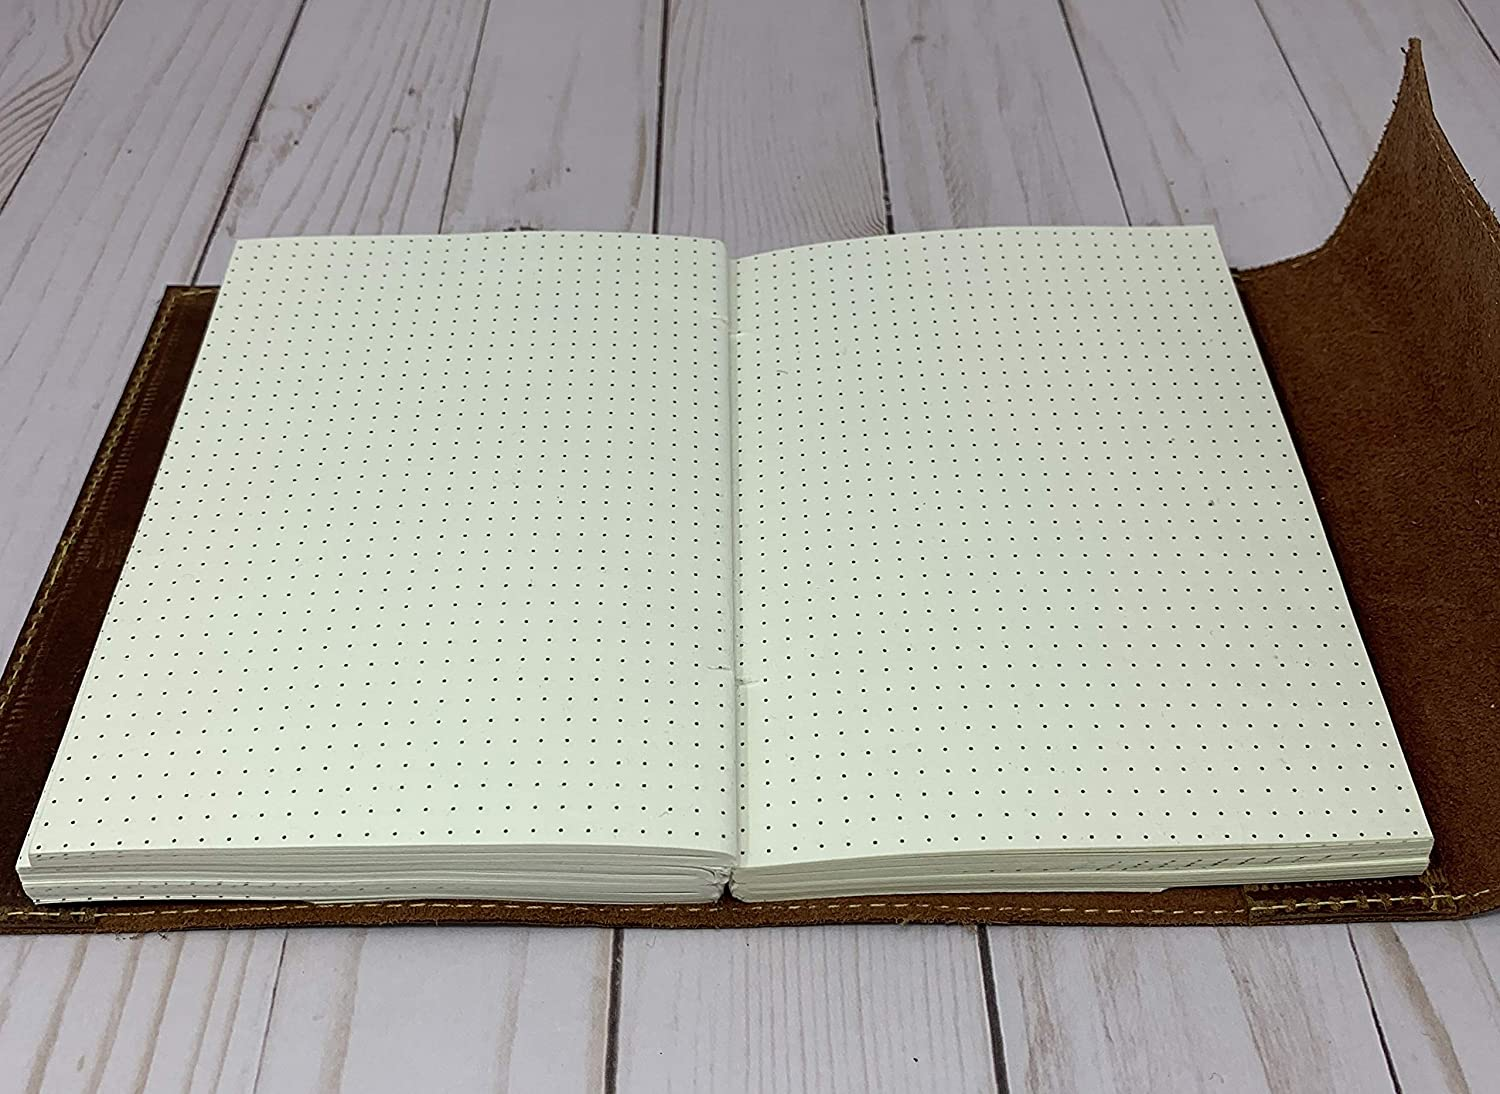 Tuk Tuk Press®  Handmade Leather Journal, 200 Tree Free Thick Recycled Cotton Dotted Pages, Refillable